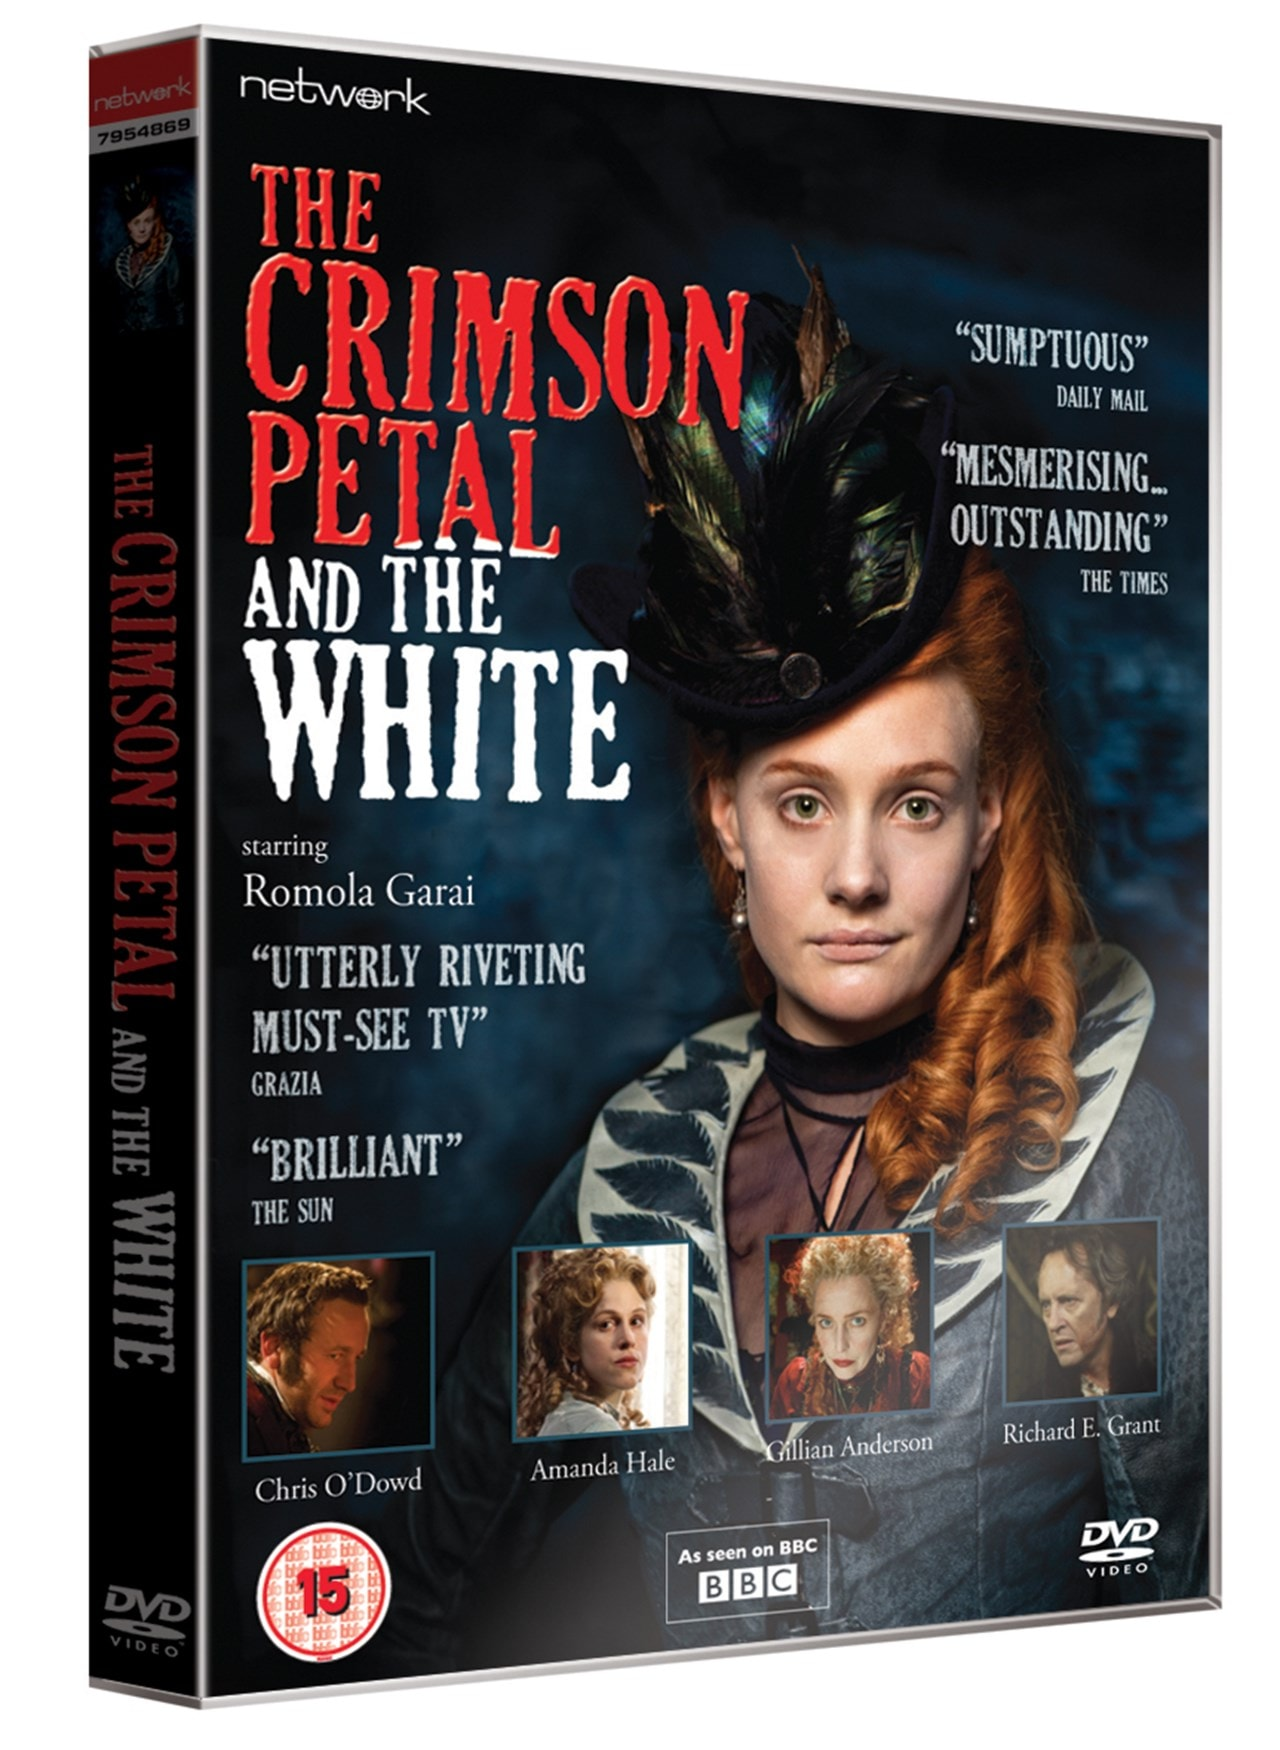 The Crimson Petal and the White - 2